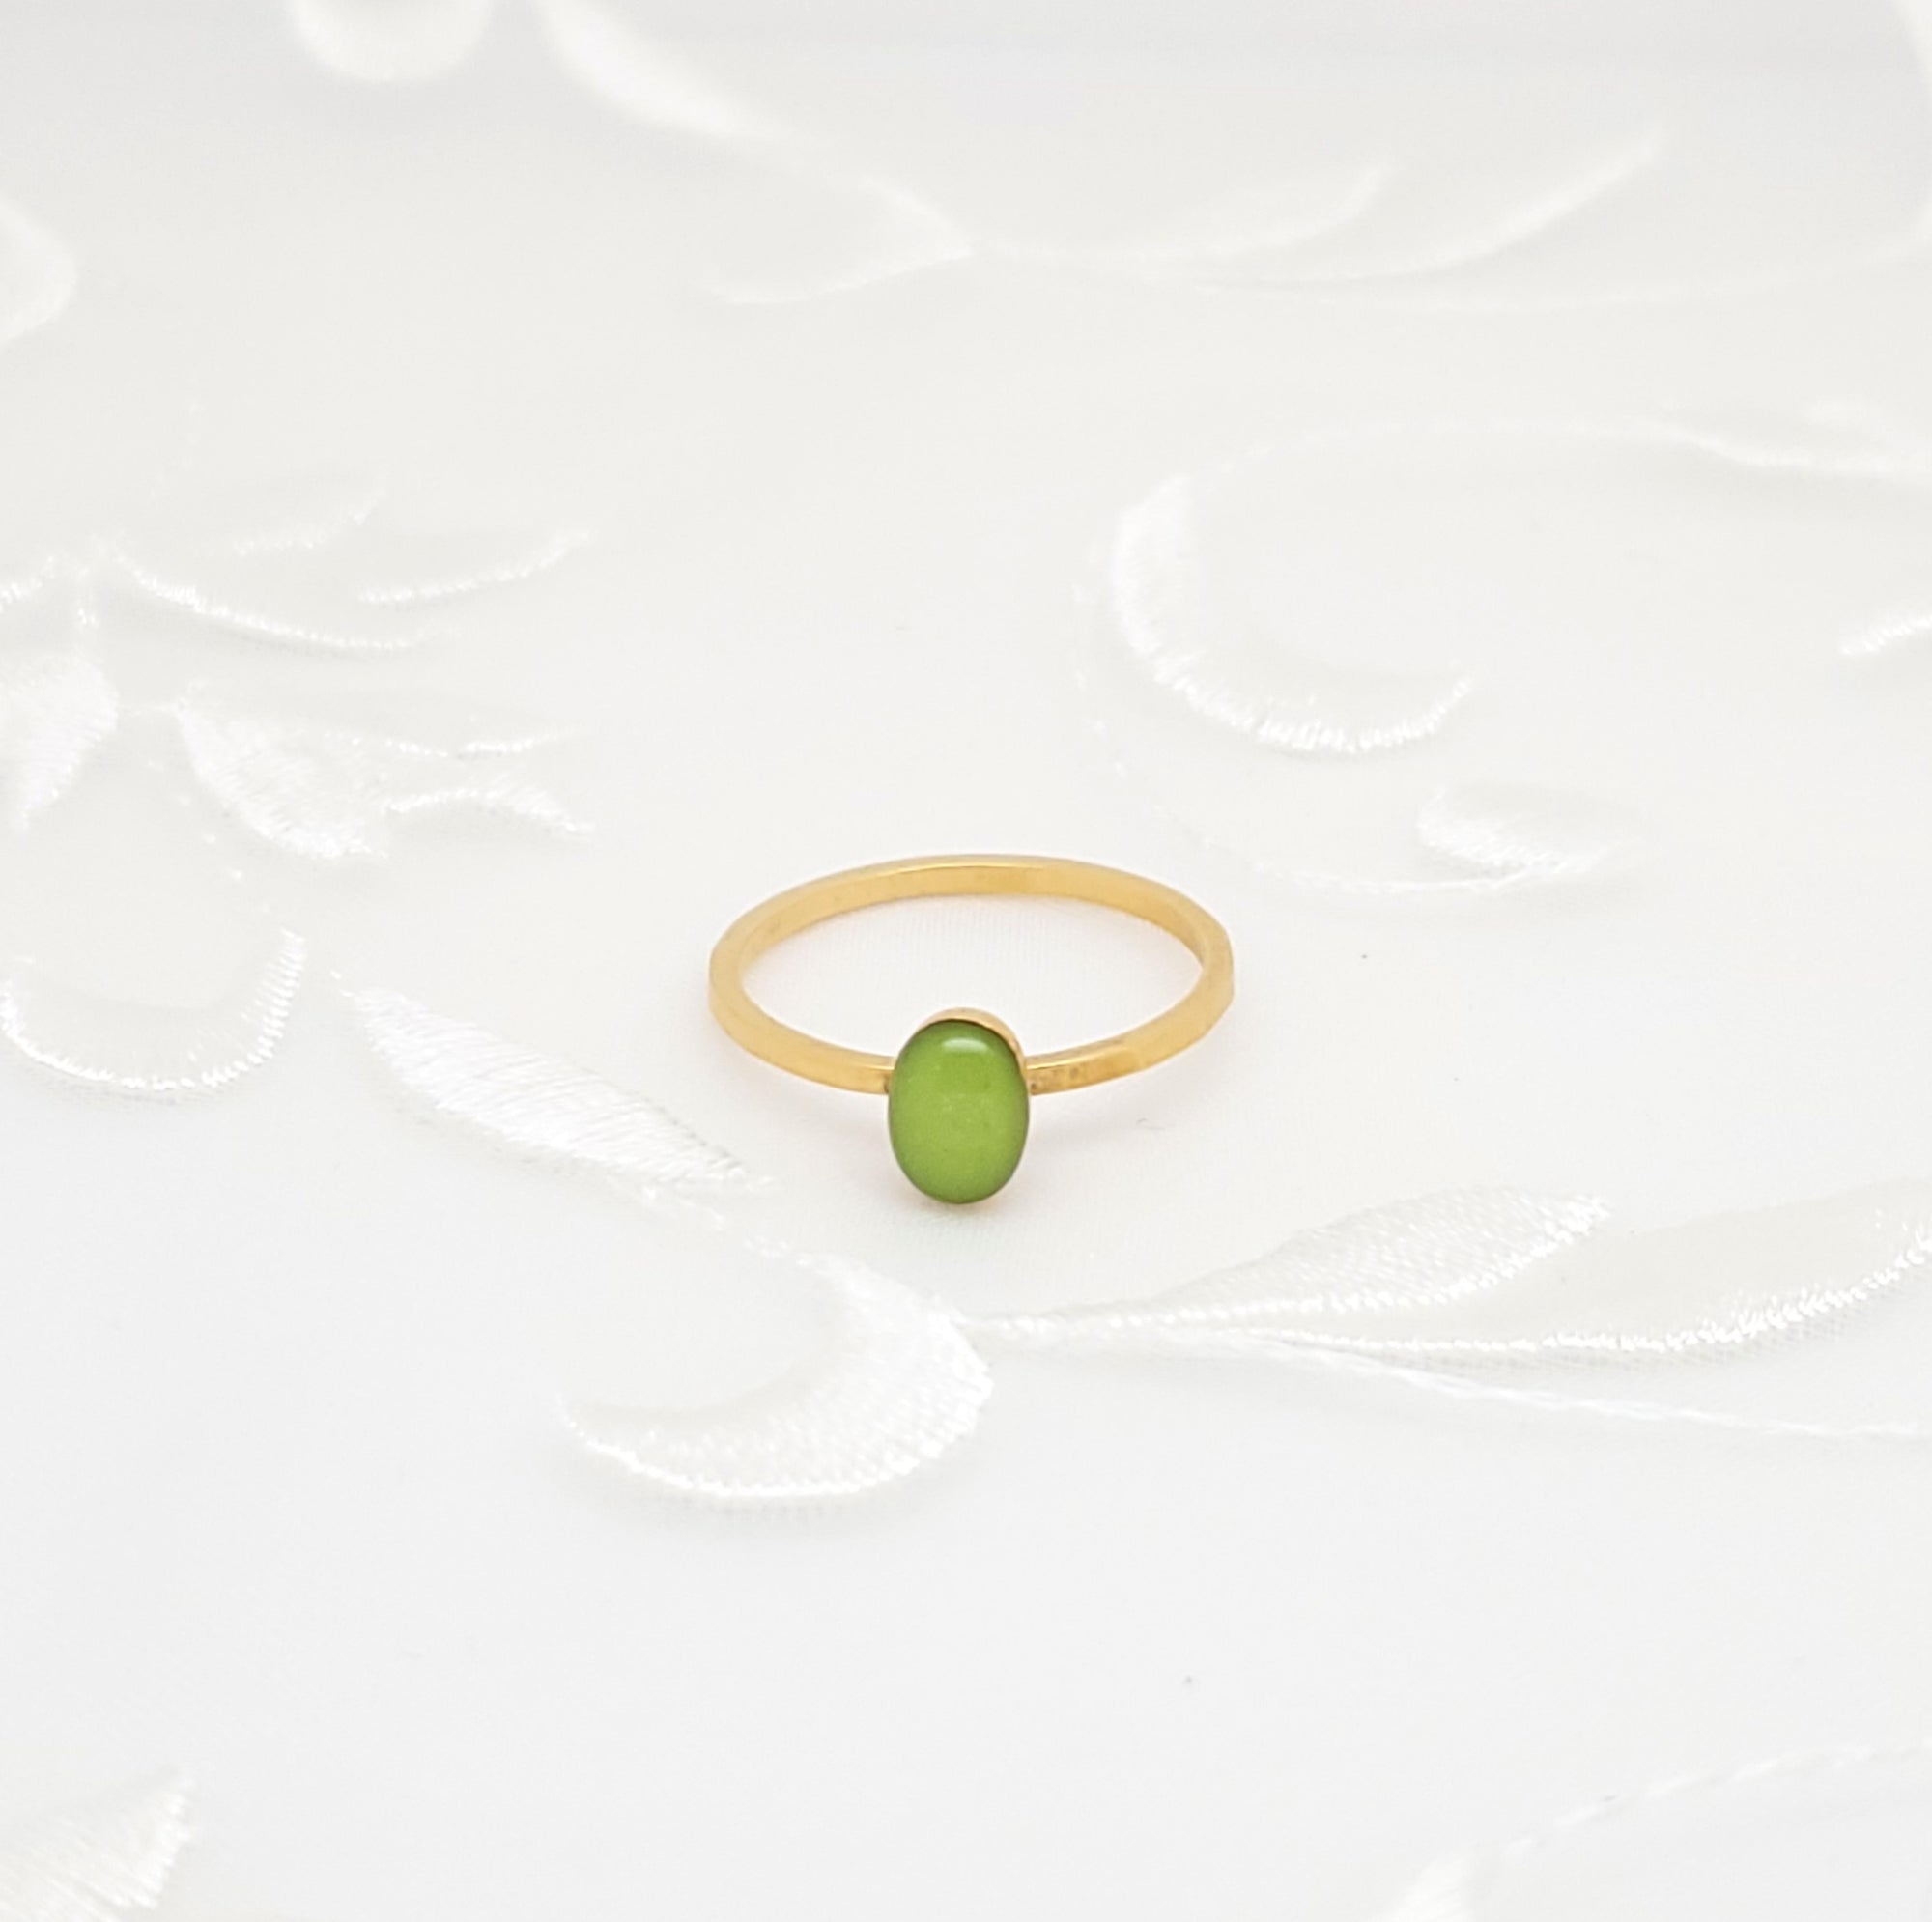 Antique Gold Oval Ring with Lime Green Resin